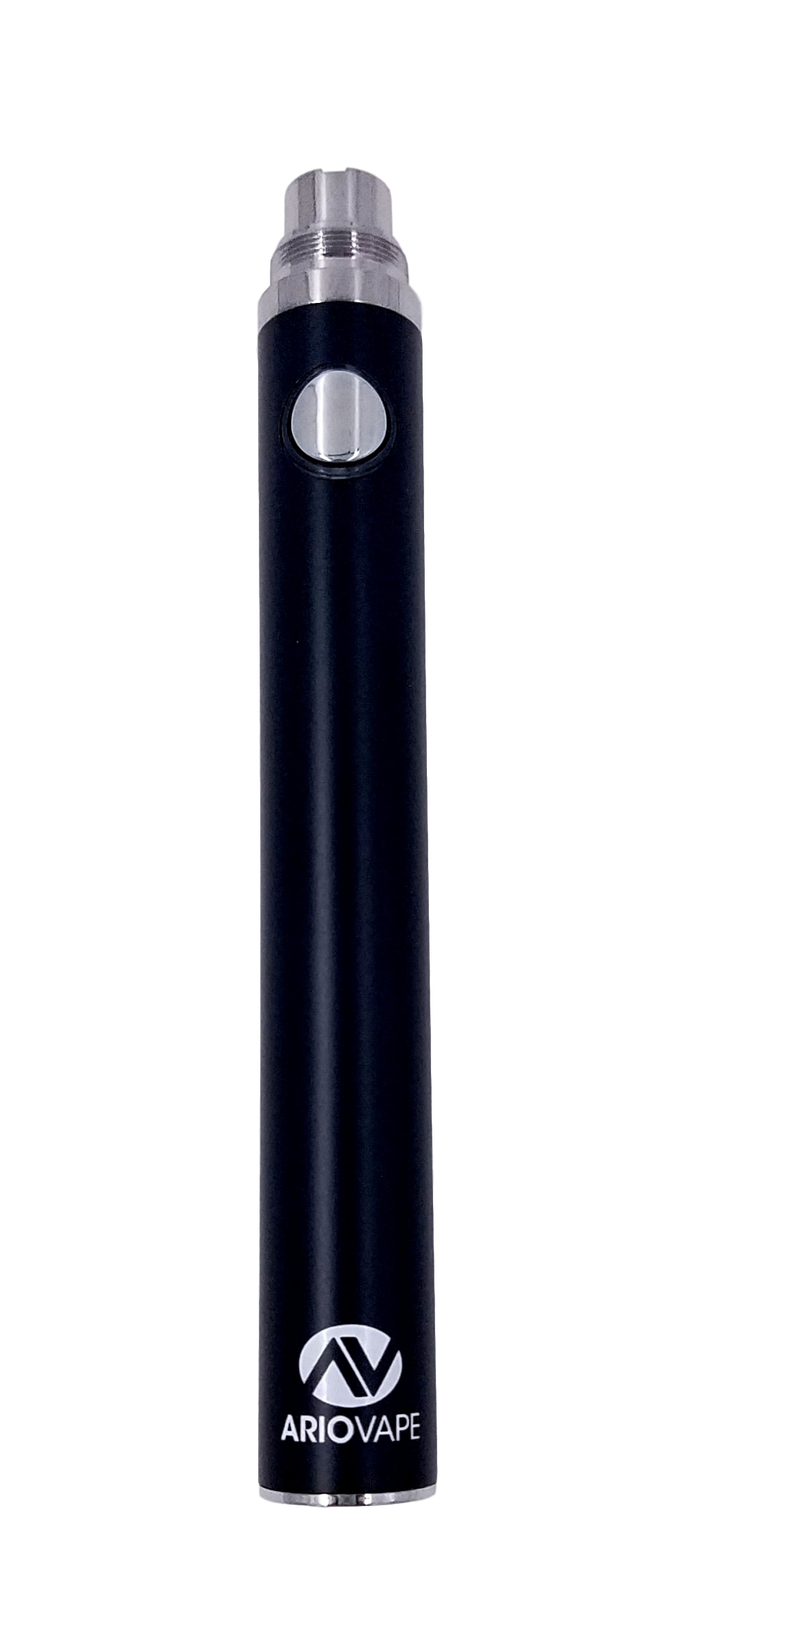 Enduro 1100 mAh Vape Pen (Cartridge Battery)